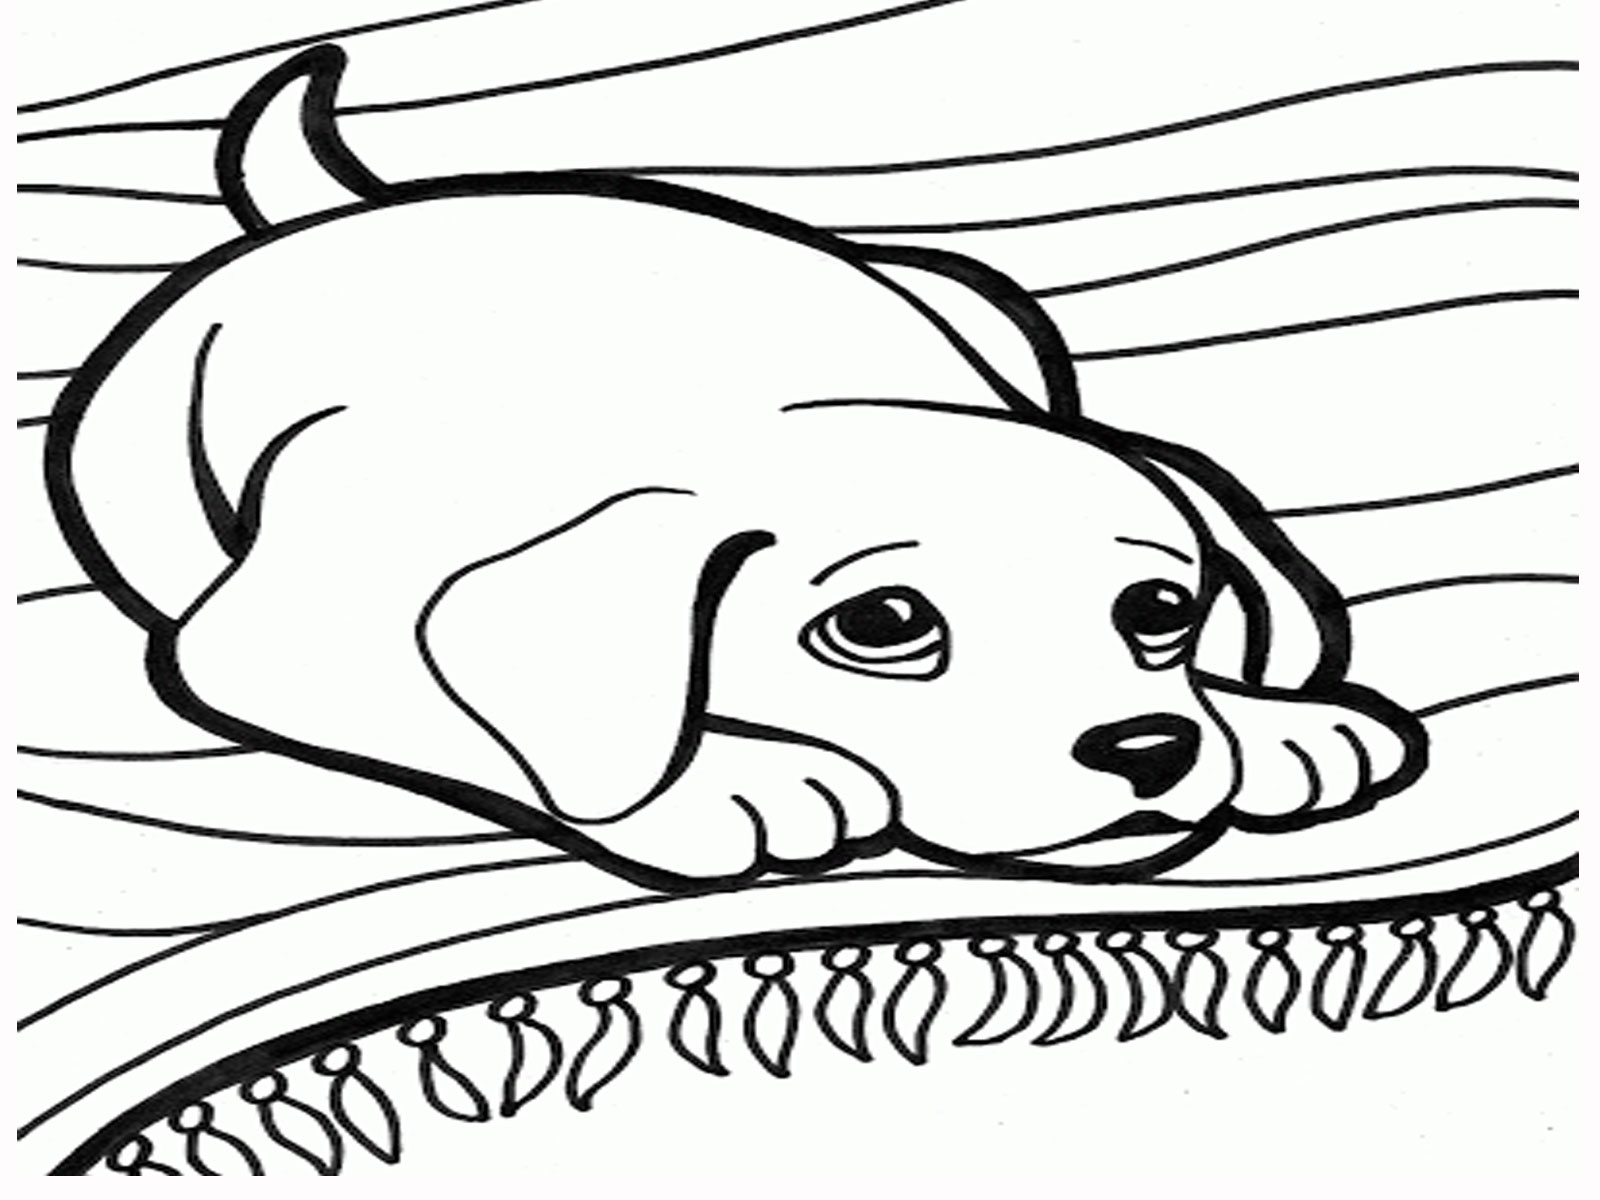 Dog Coloring Pages For Adults At Getdrawings Free Download